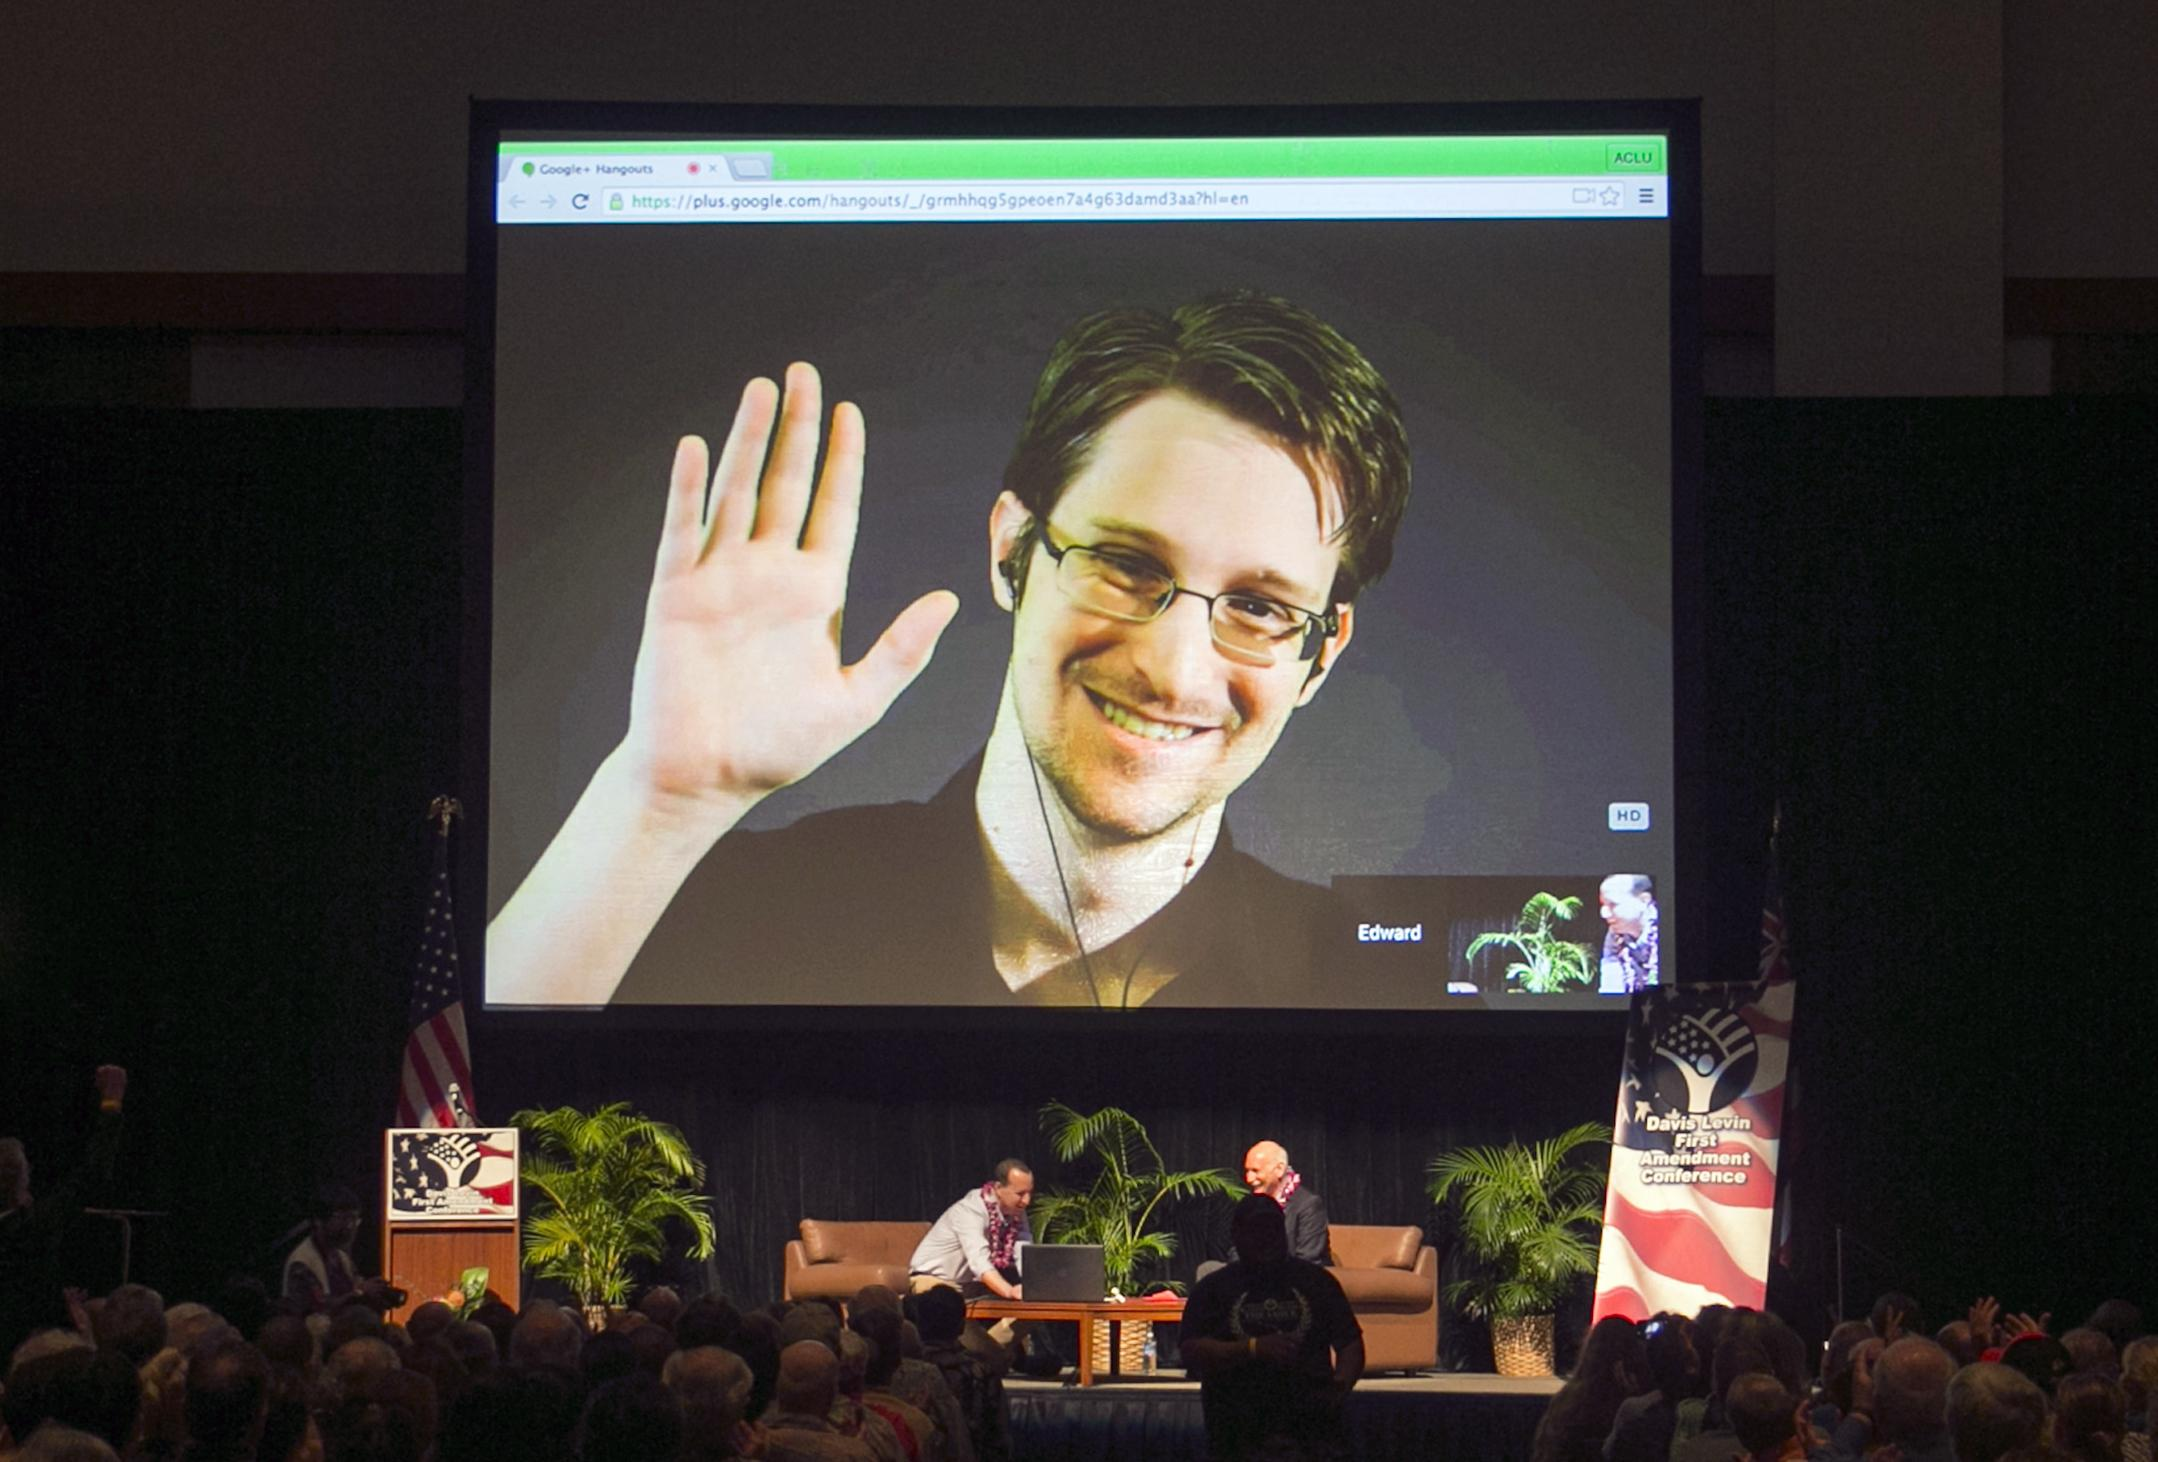 Norwegian Court Rejects Edward Snowden's Request For Safe Passage Featured